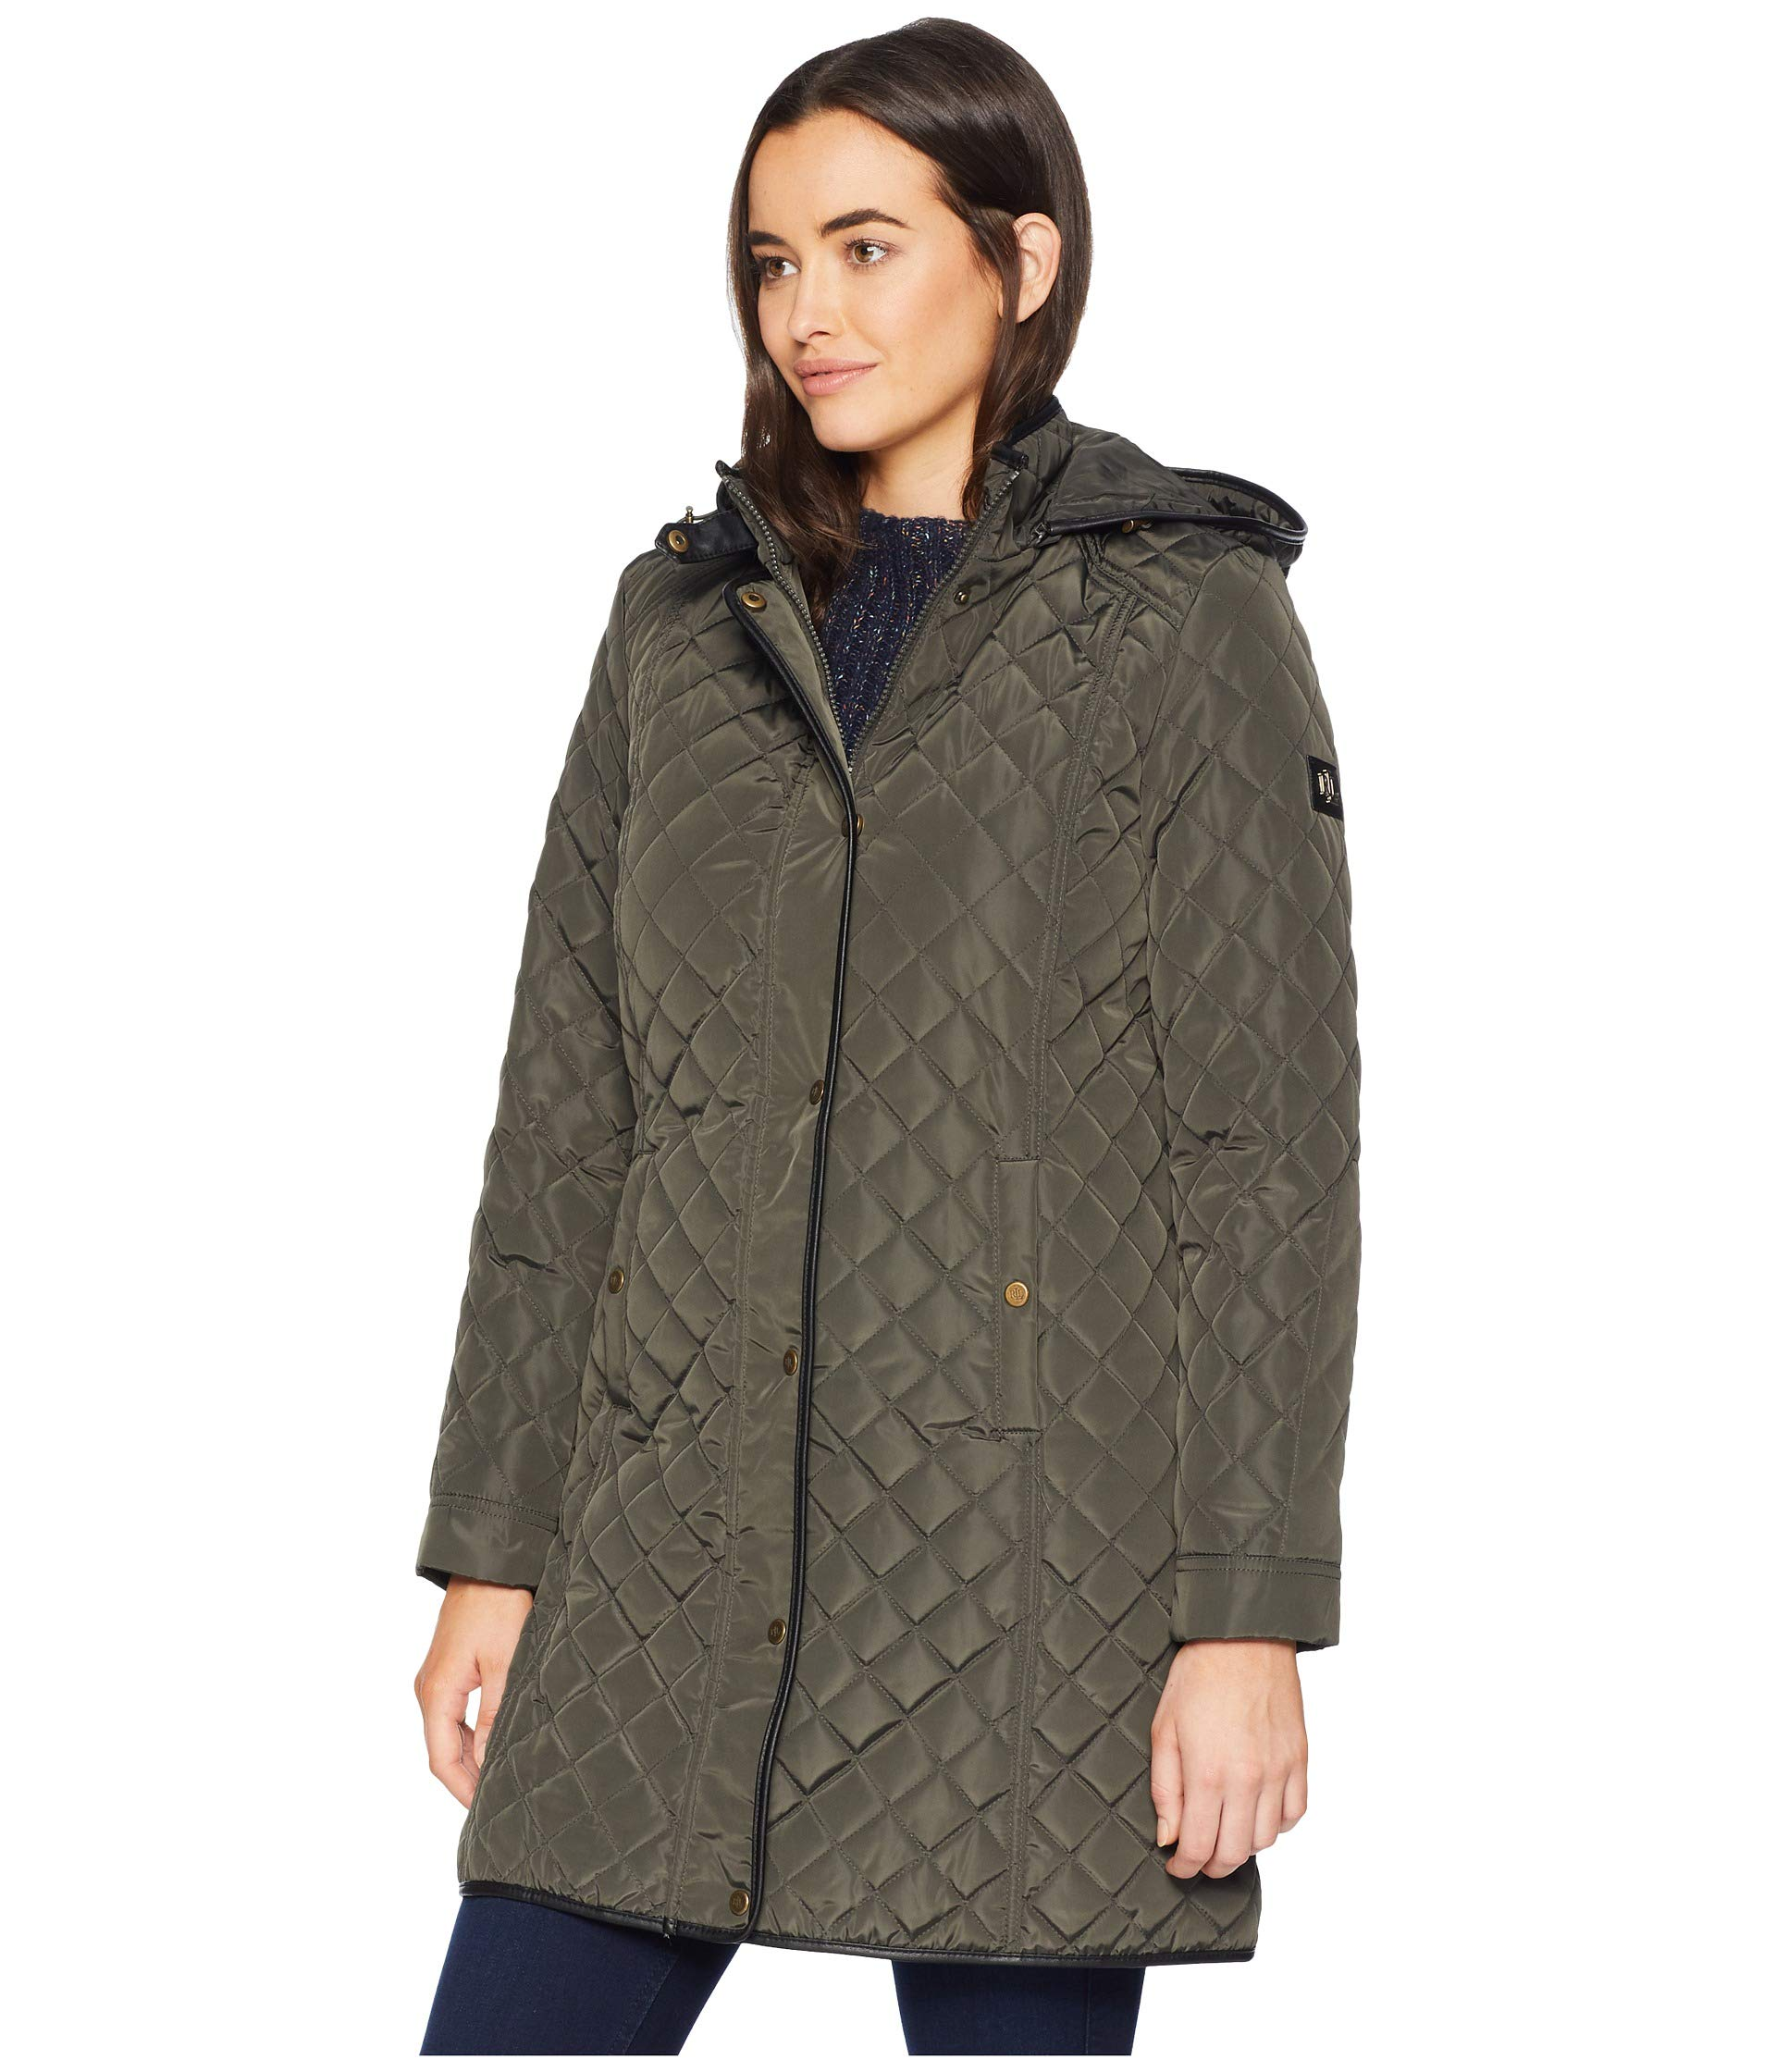 Tab Moss W Dark Hooded Quilt 4 3 Leather Ralph Lauren Faux 4vqZAA